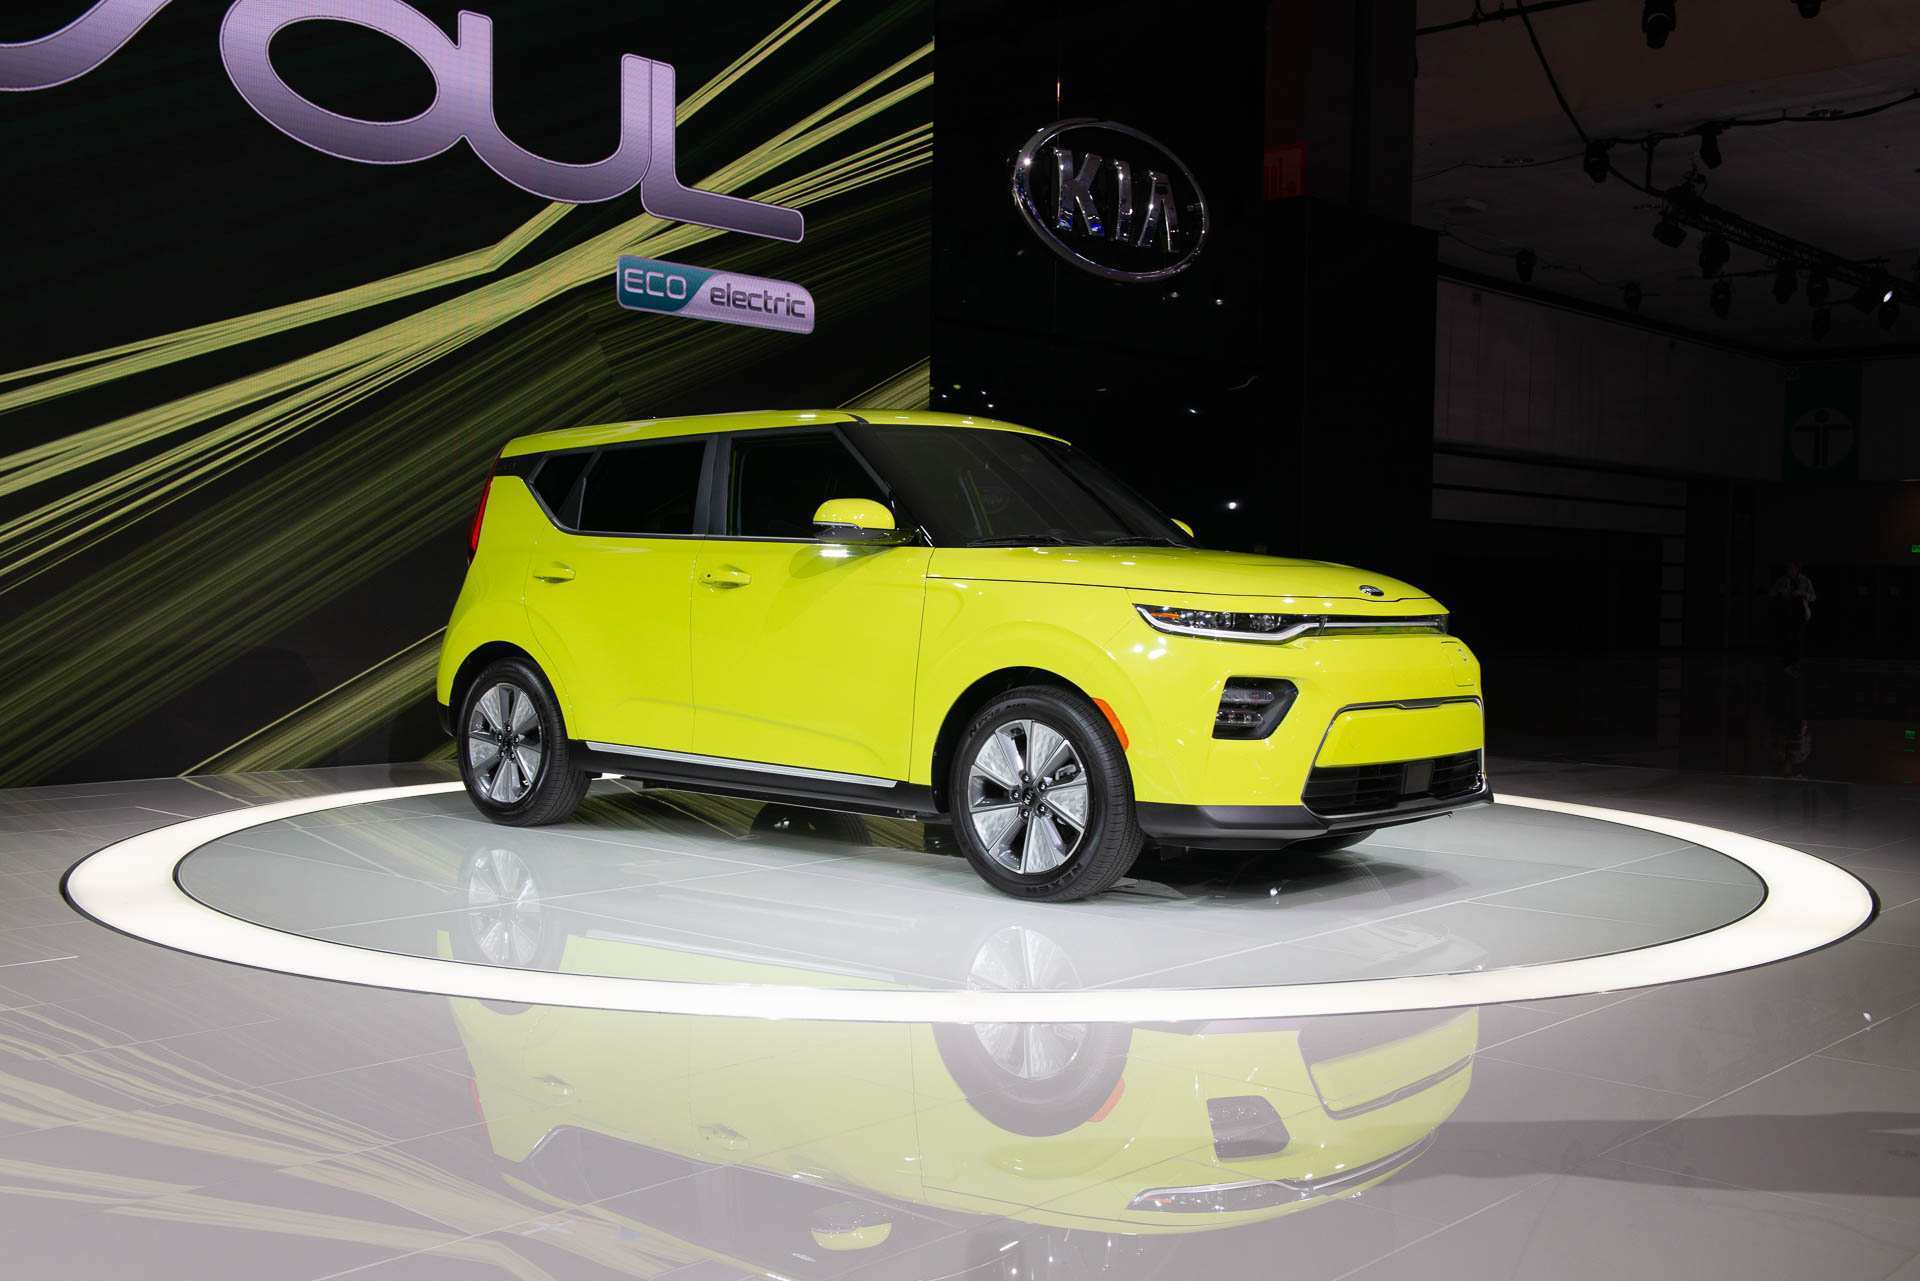 89 Best Kia E Soul 2020 Price New Concept